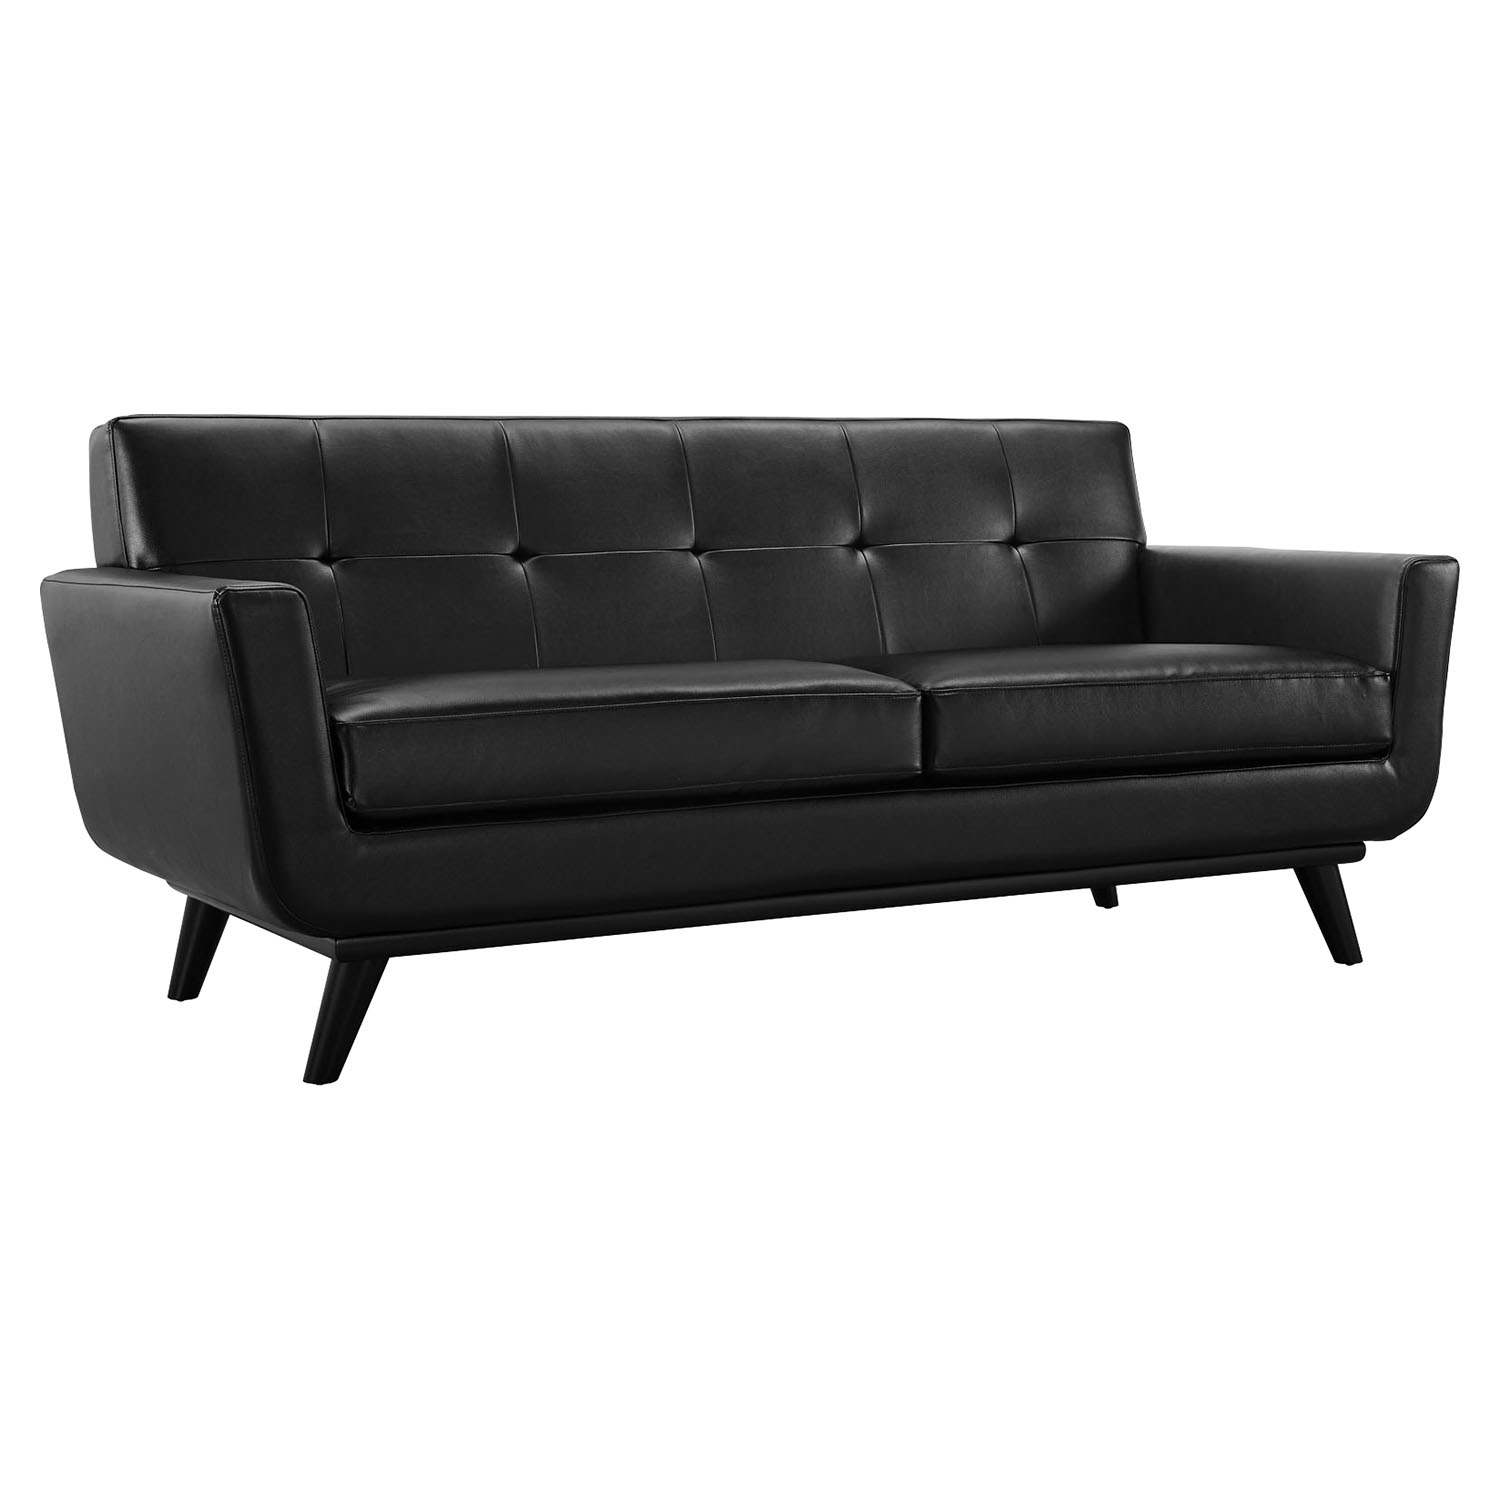 Engage 2 pieces leather sofa set tufted black dcg stores for Tufted couch set